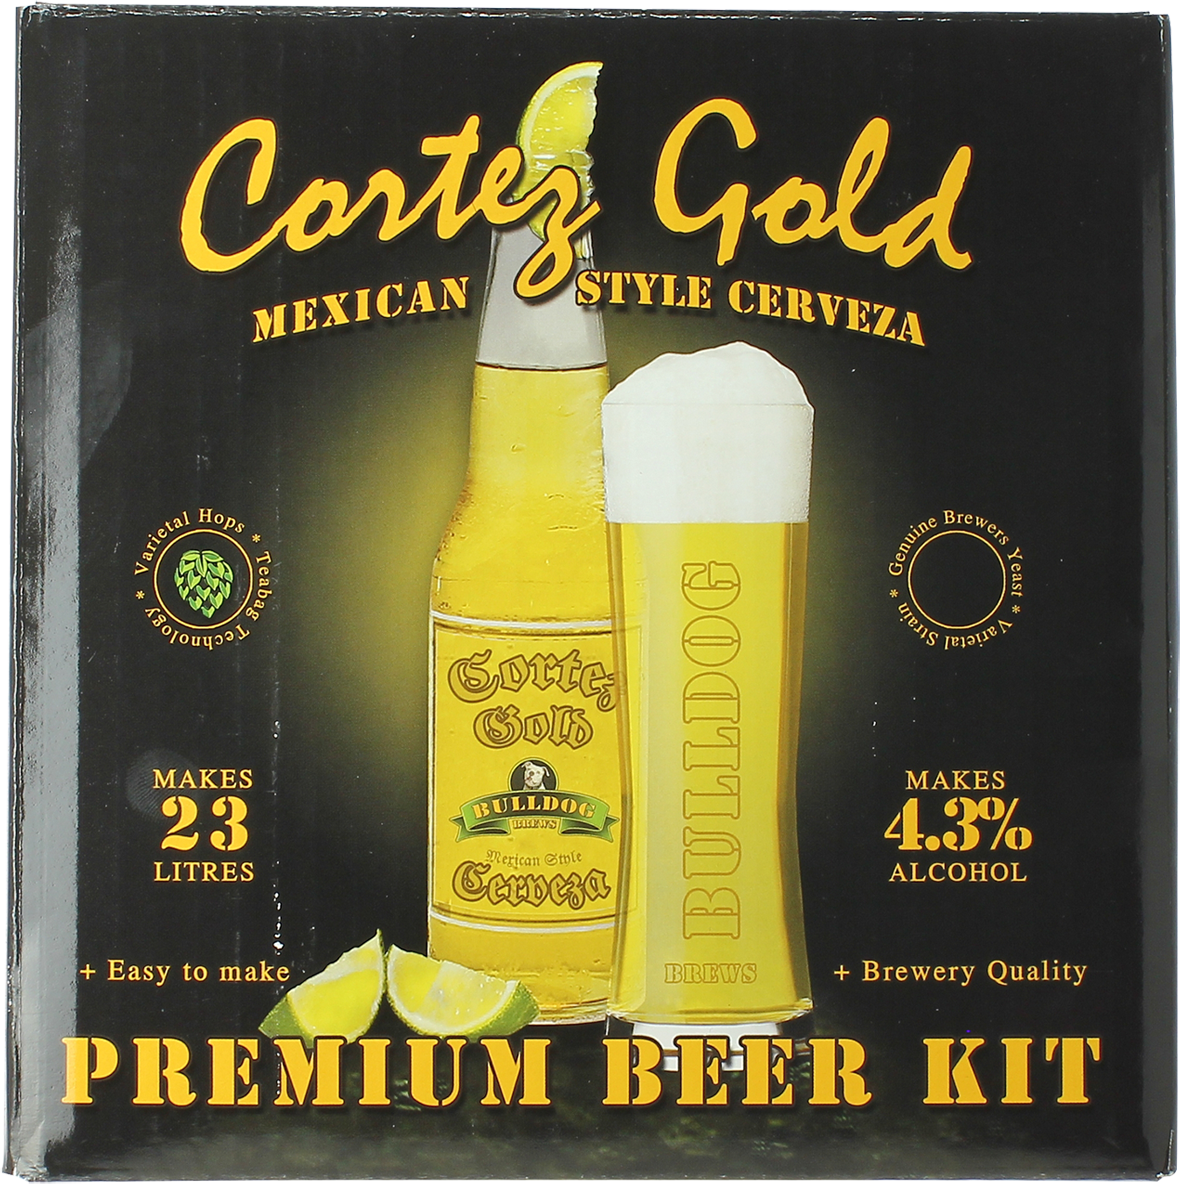 Kit Bulldog Cortez Gold Mexican Cerveza